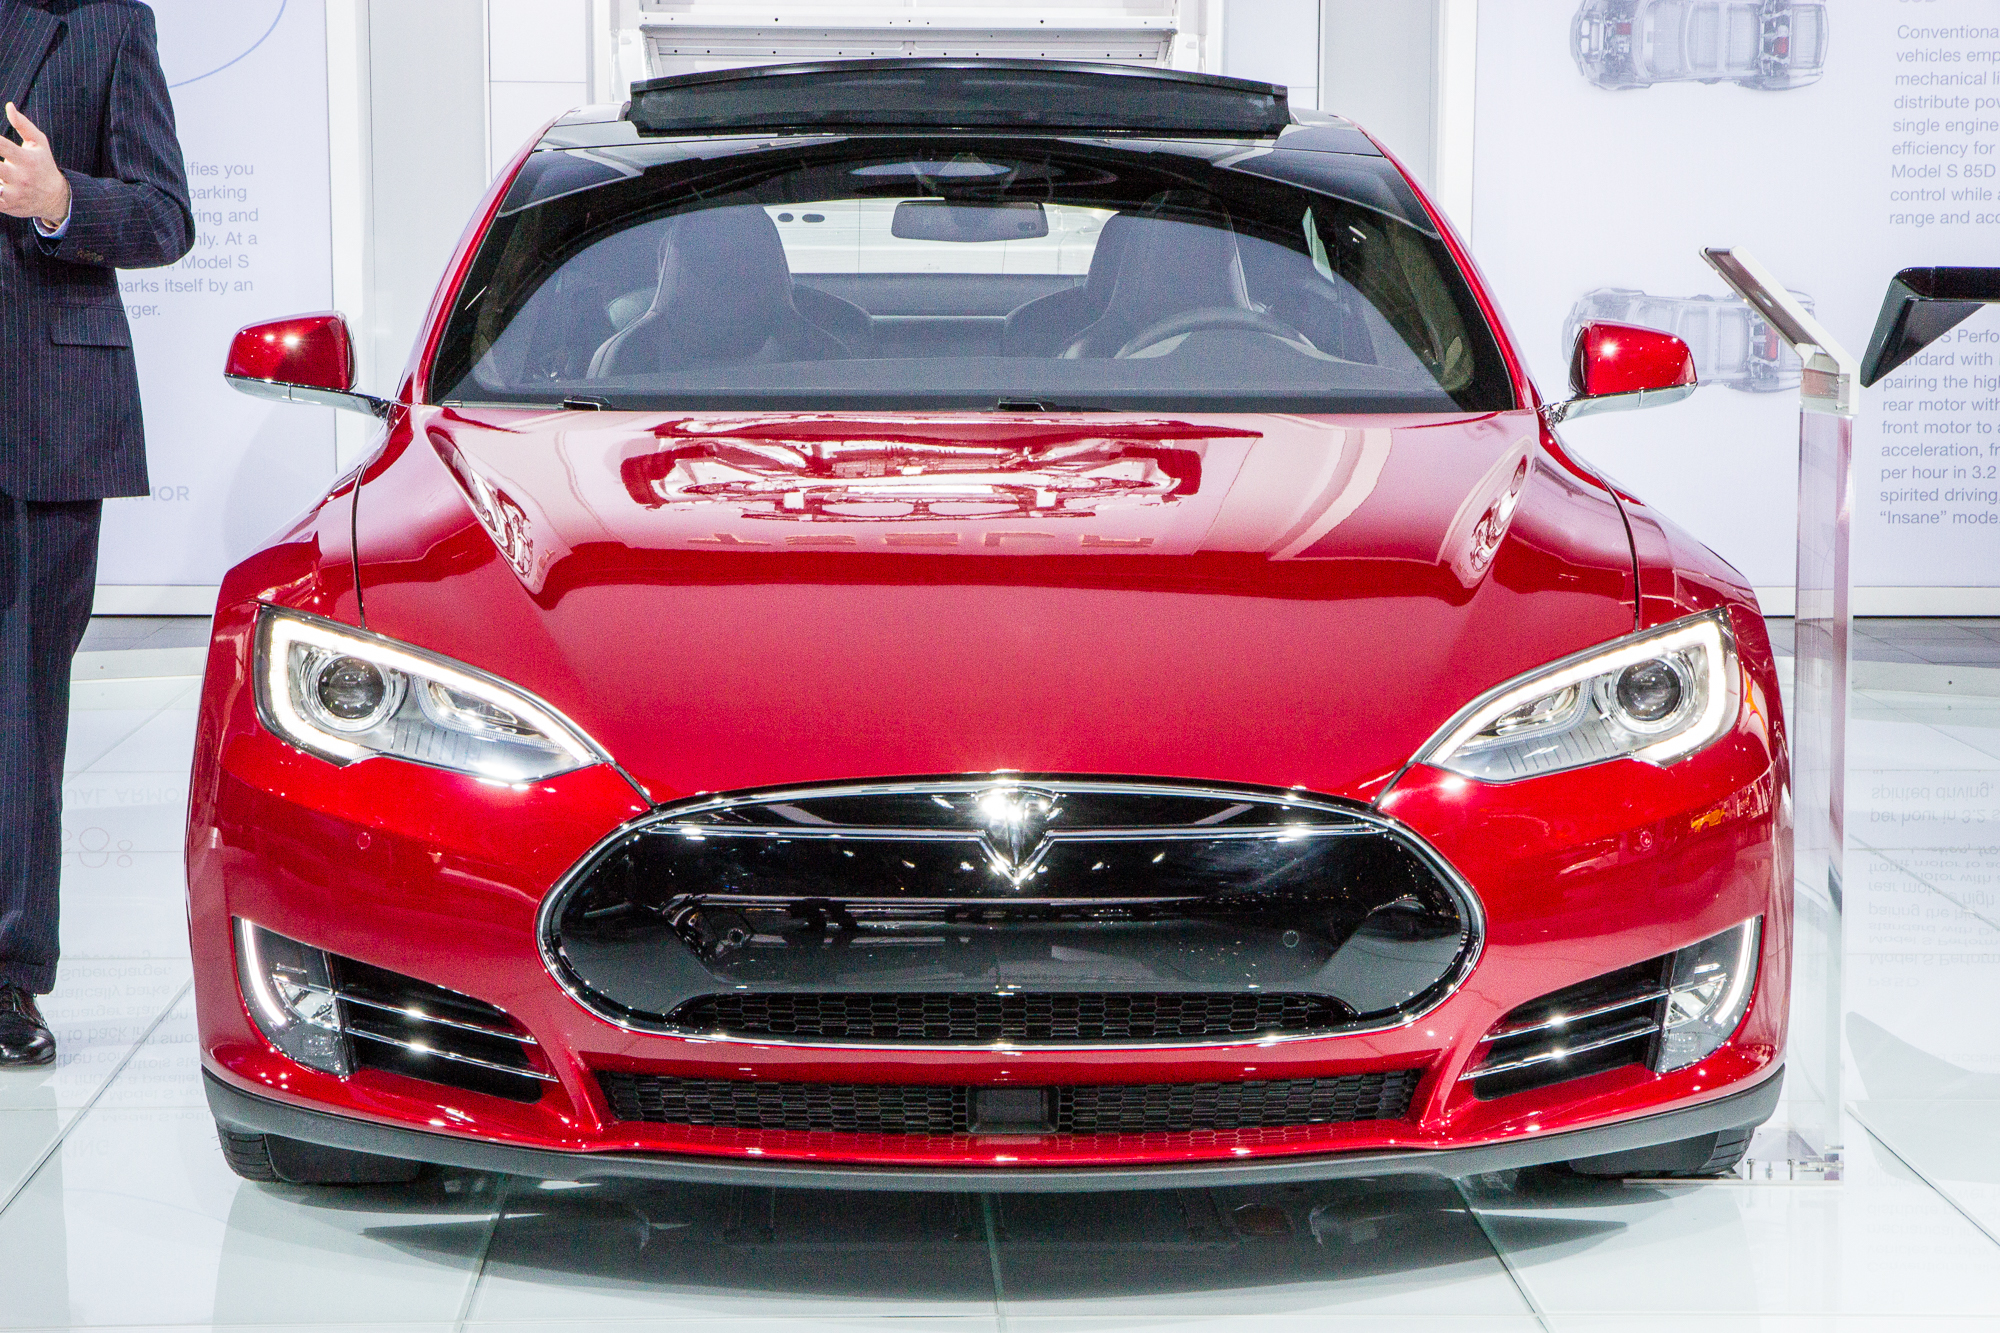 Tesla Model S P85D Hot Rod Now Has Shortest Delivery Time